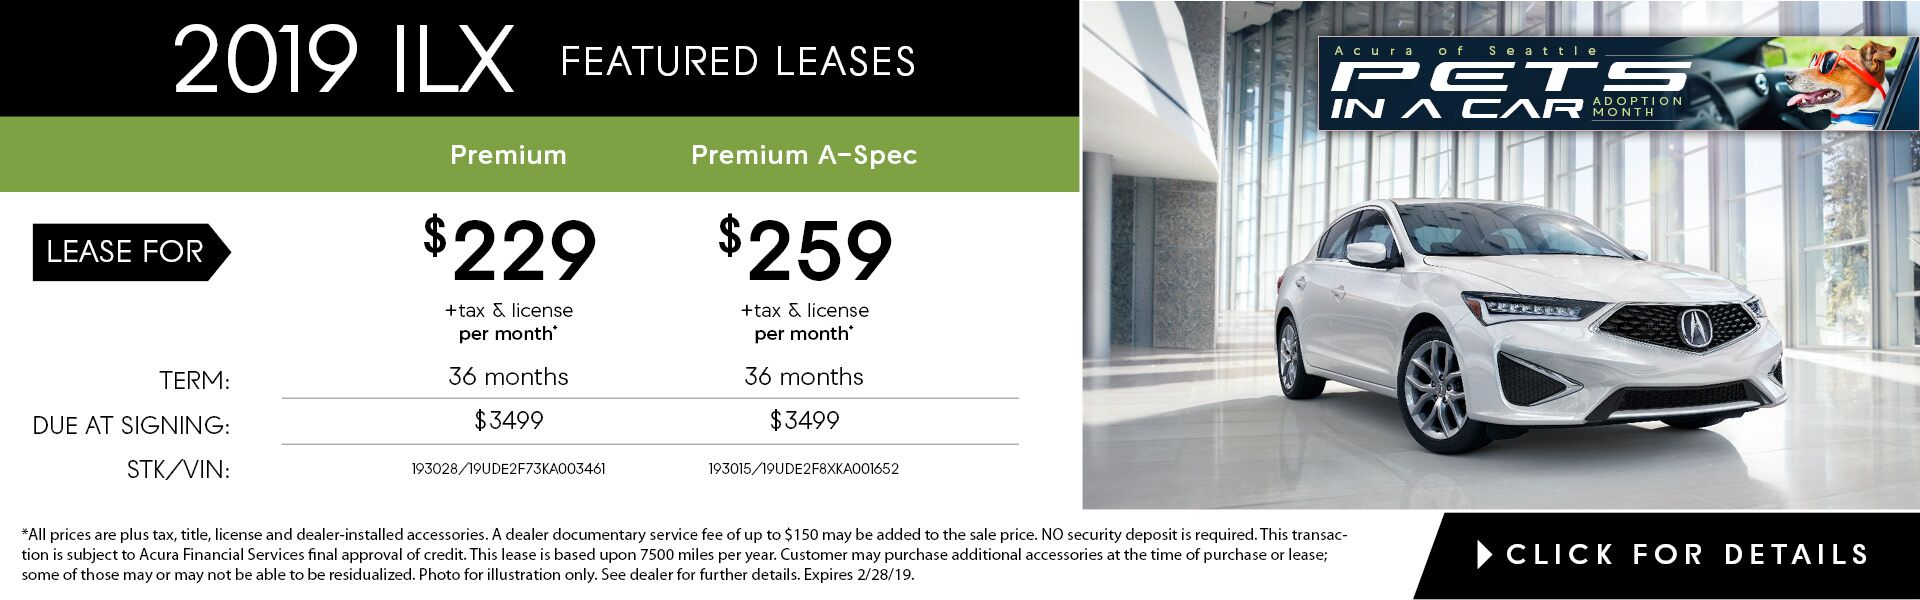 ILX Feb. Featured Lease